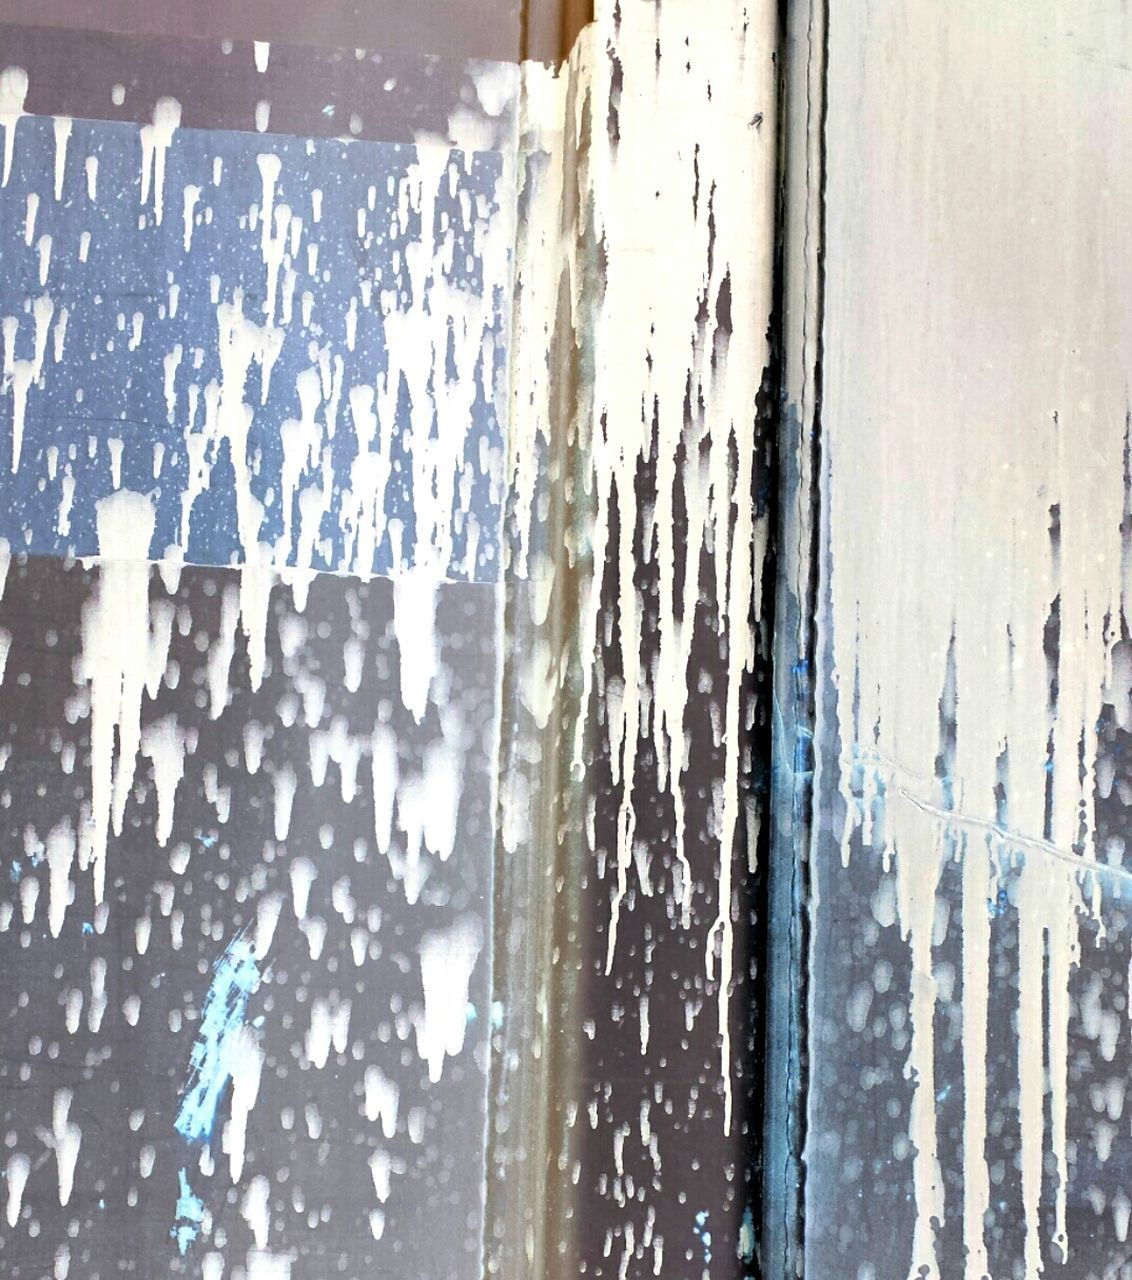 weathered, window, indoors, backgrounds, day, textured, paint, close-up, water, full frame, no people, architecture